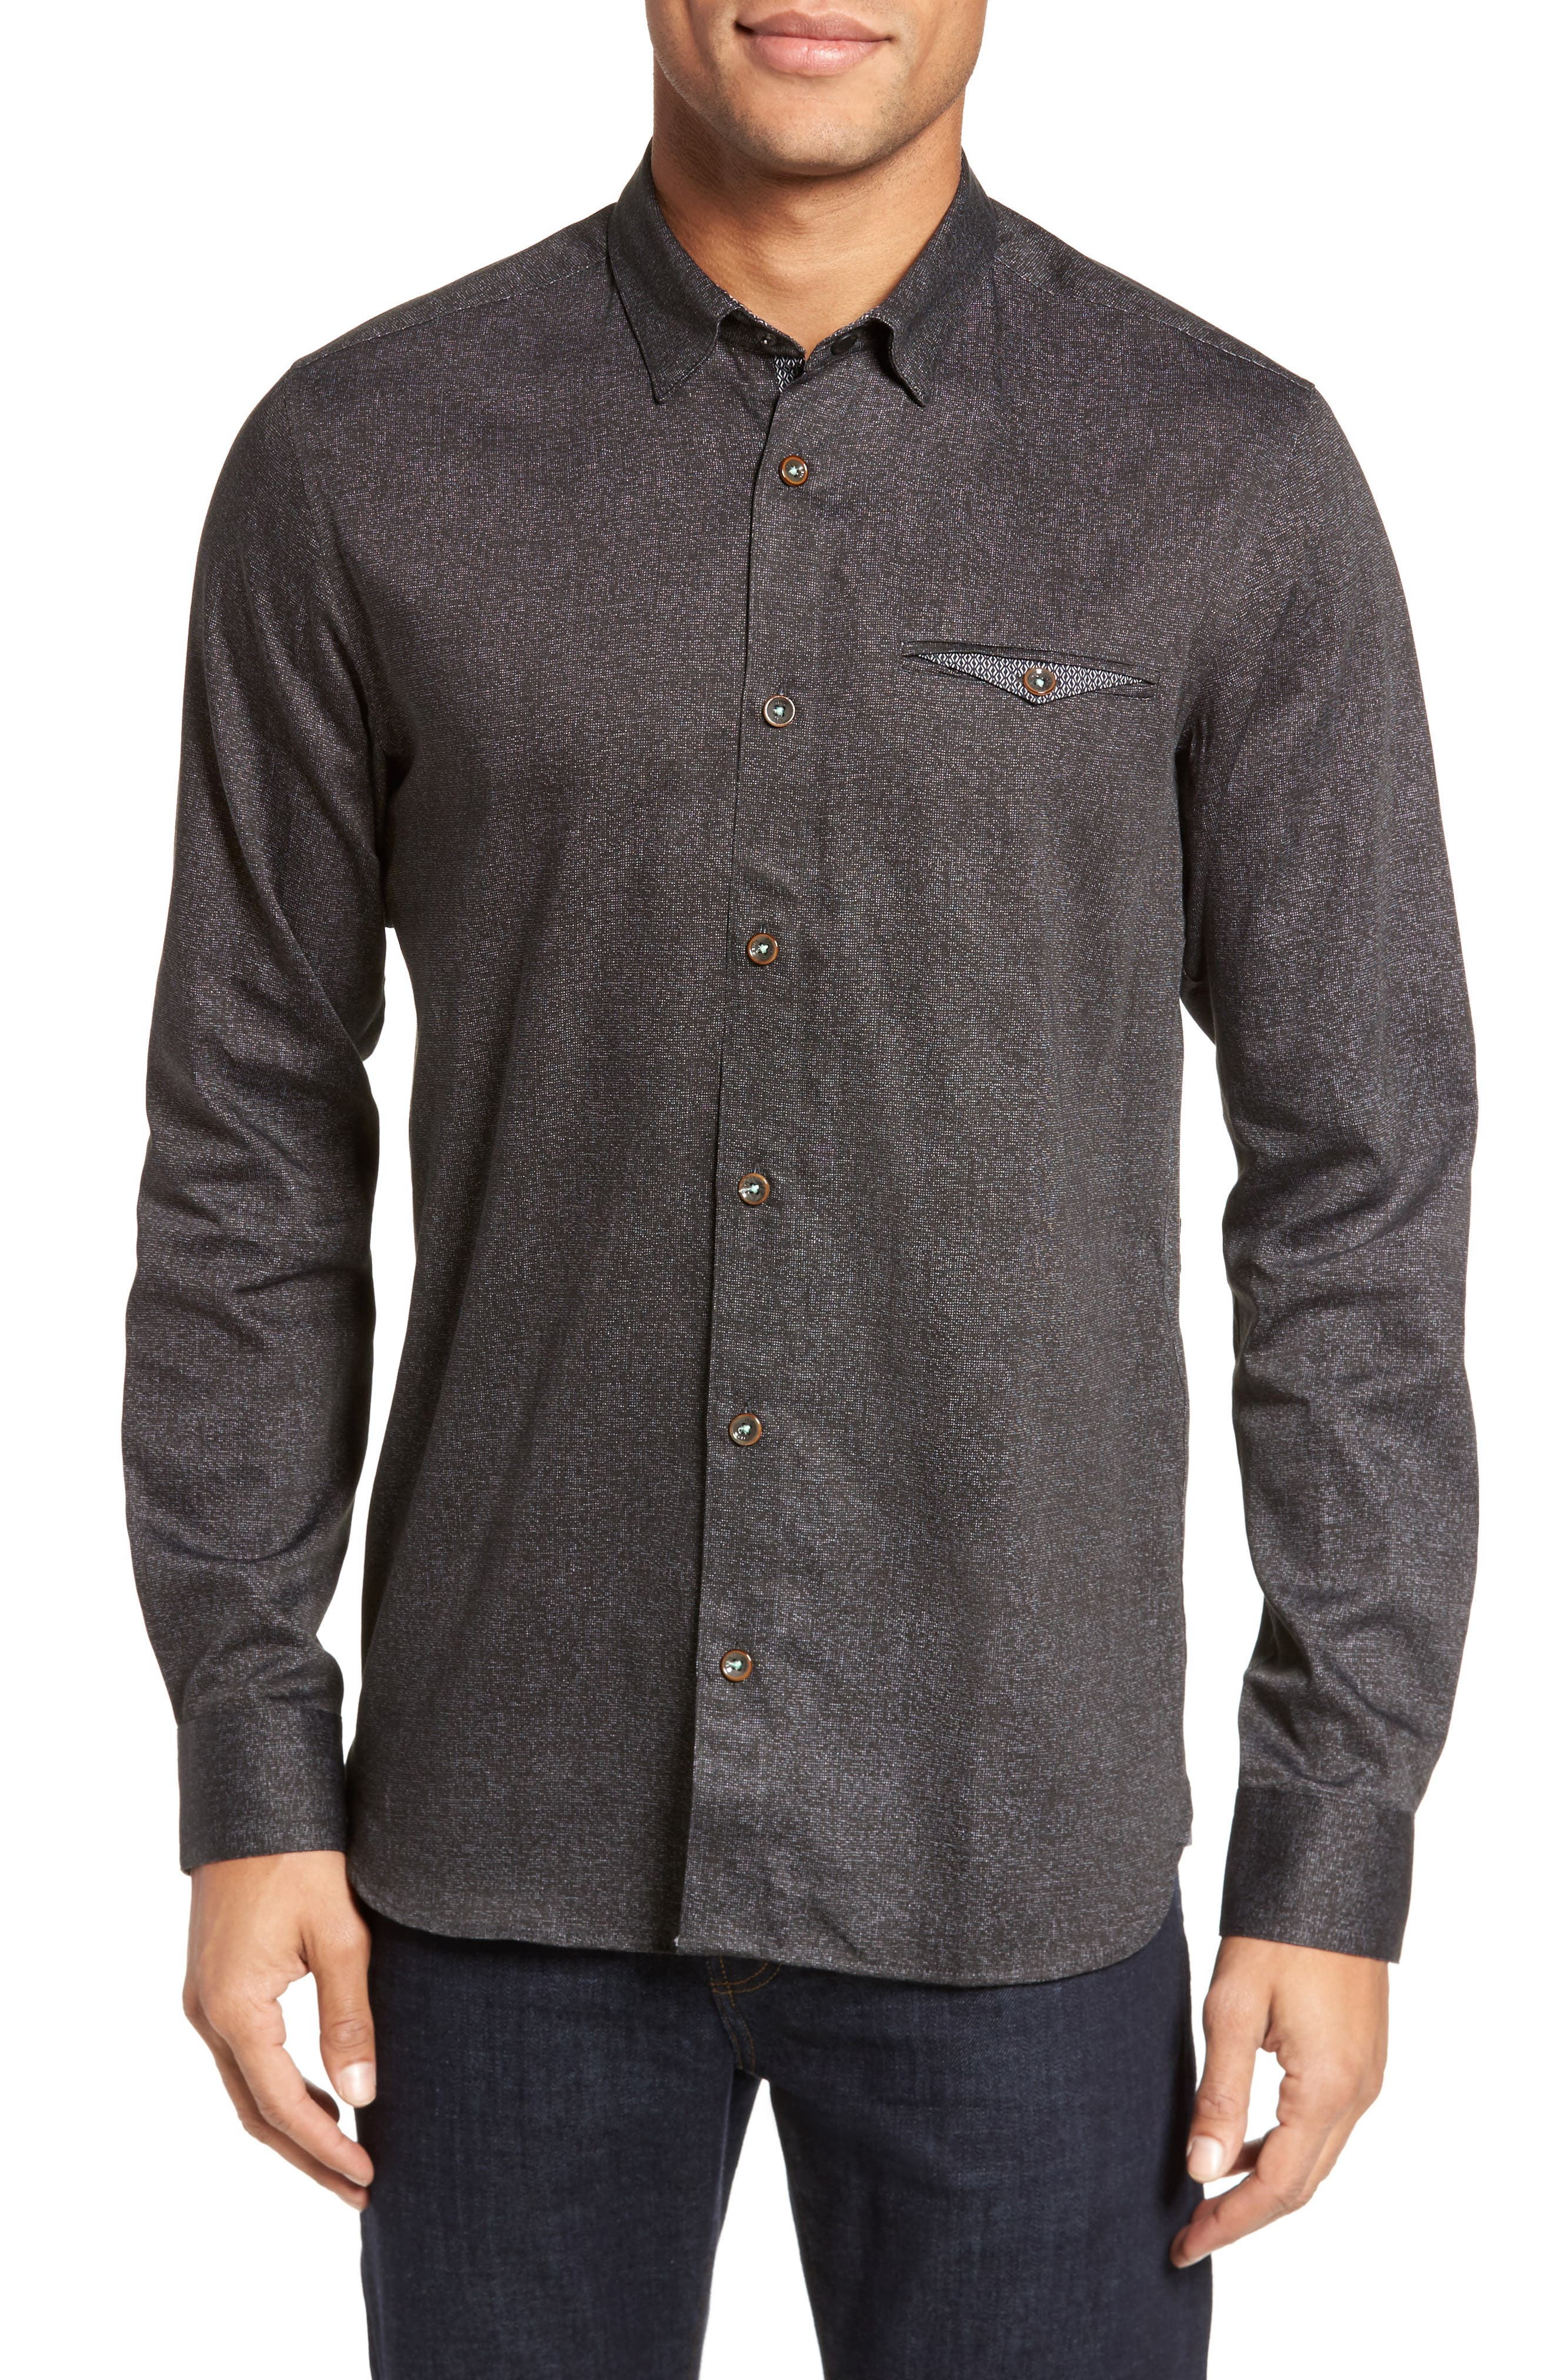 Main Image - Ted Baker London Norbor Modern Slim Fit Microdot Print Sport Shirt